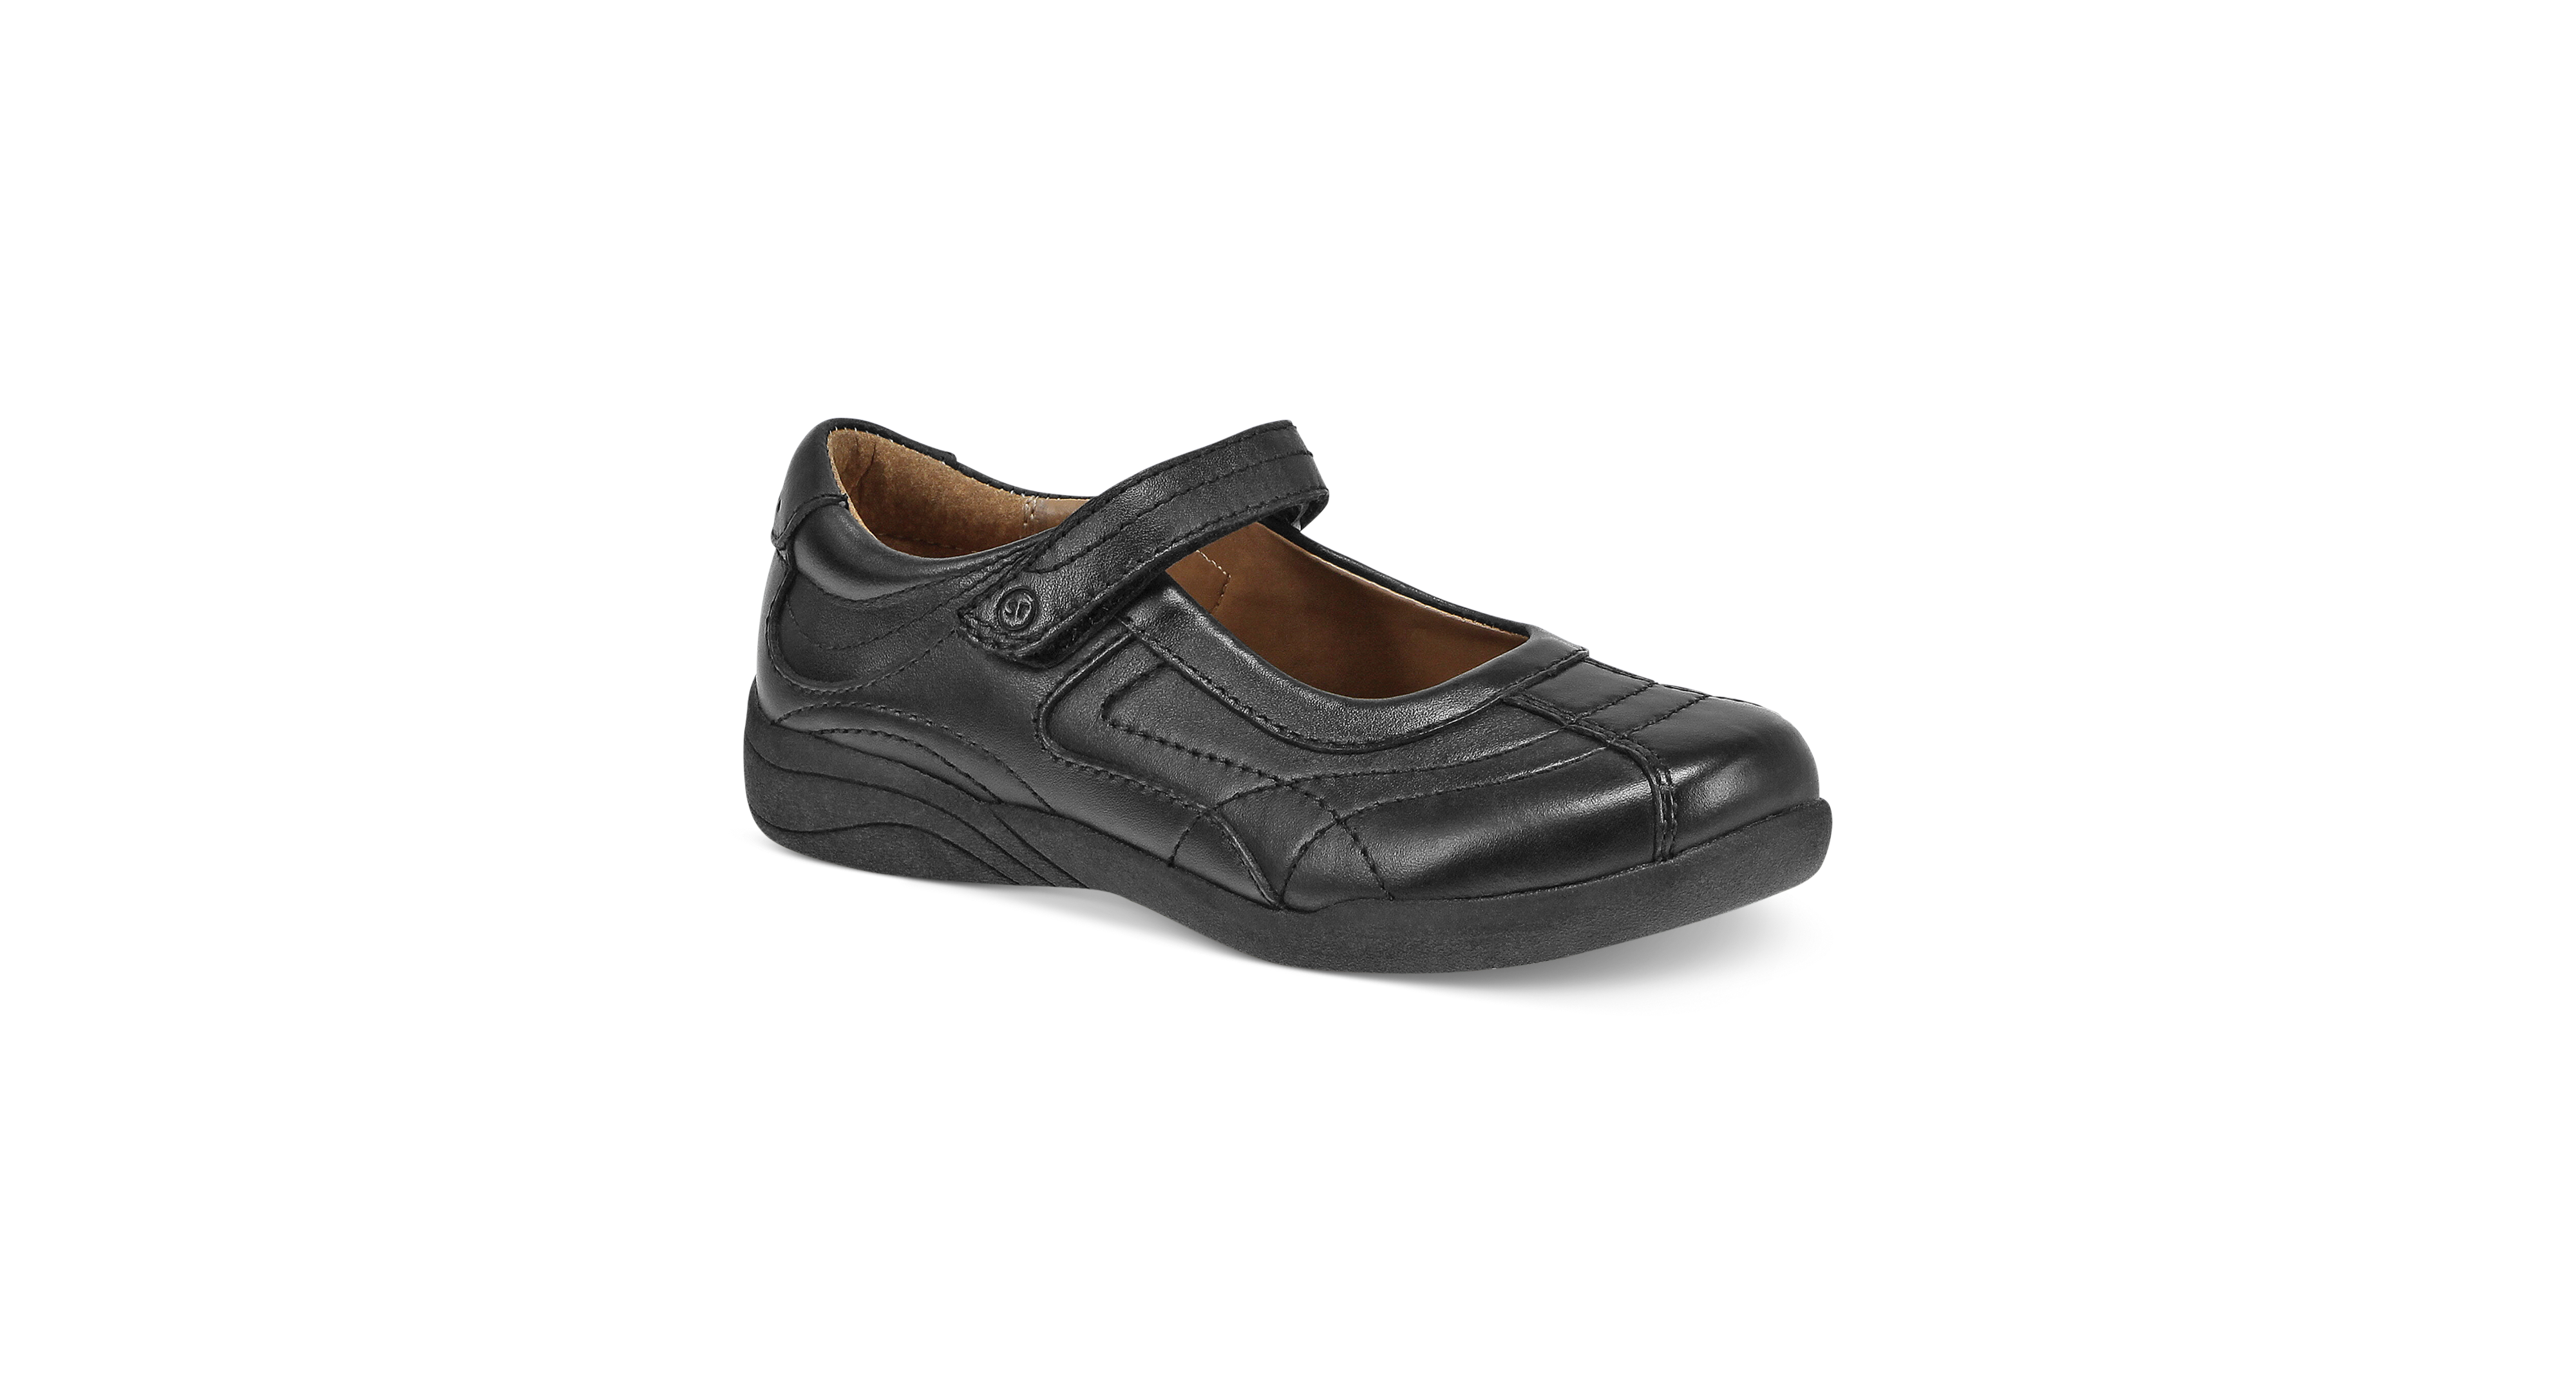 Stride Rite Kids Shoes, Girls or Little Girls Claire Shoes